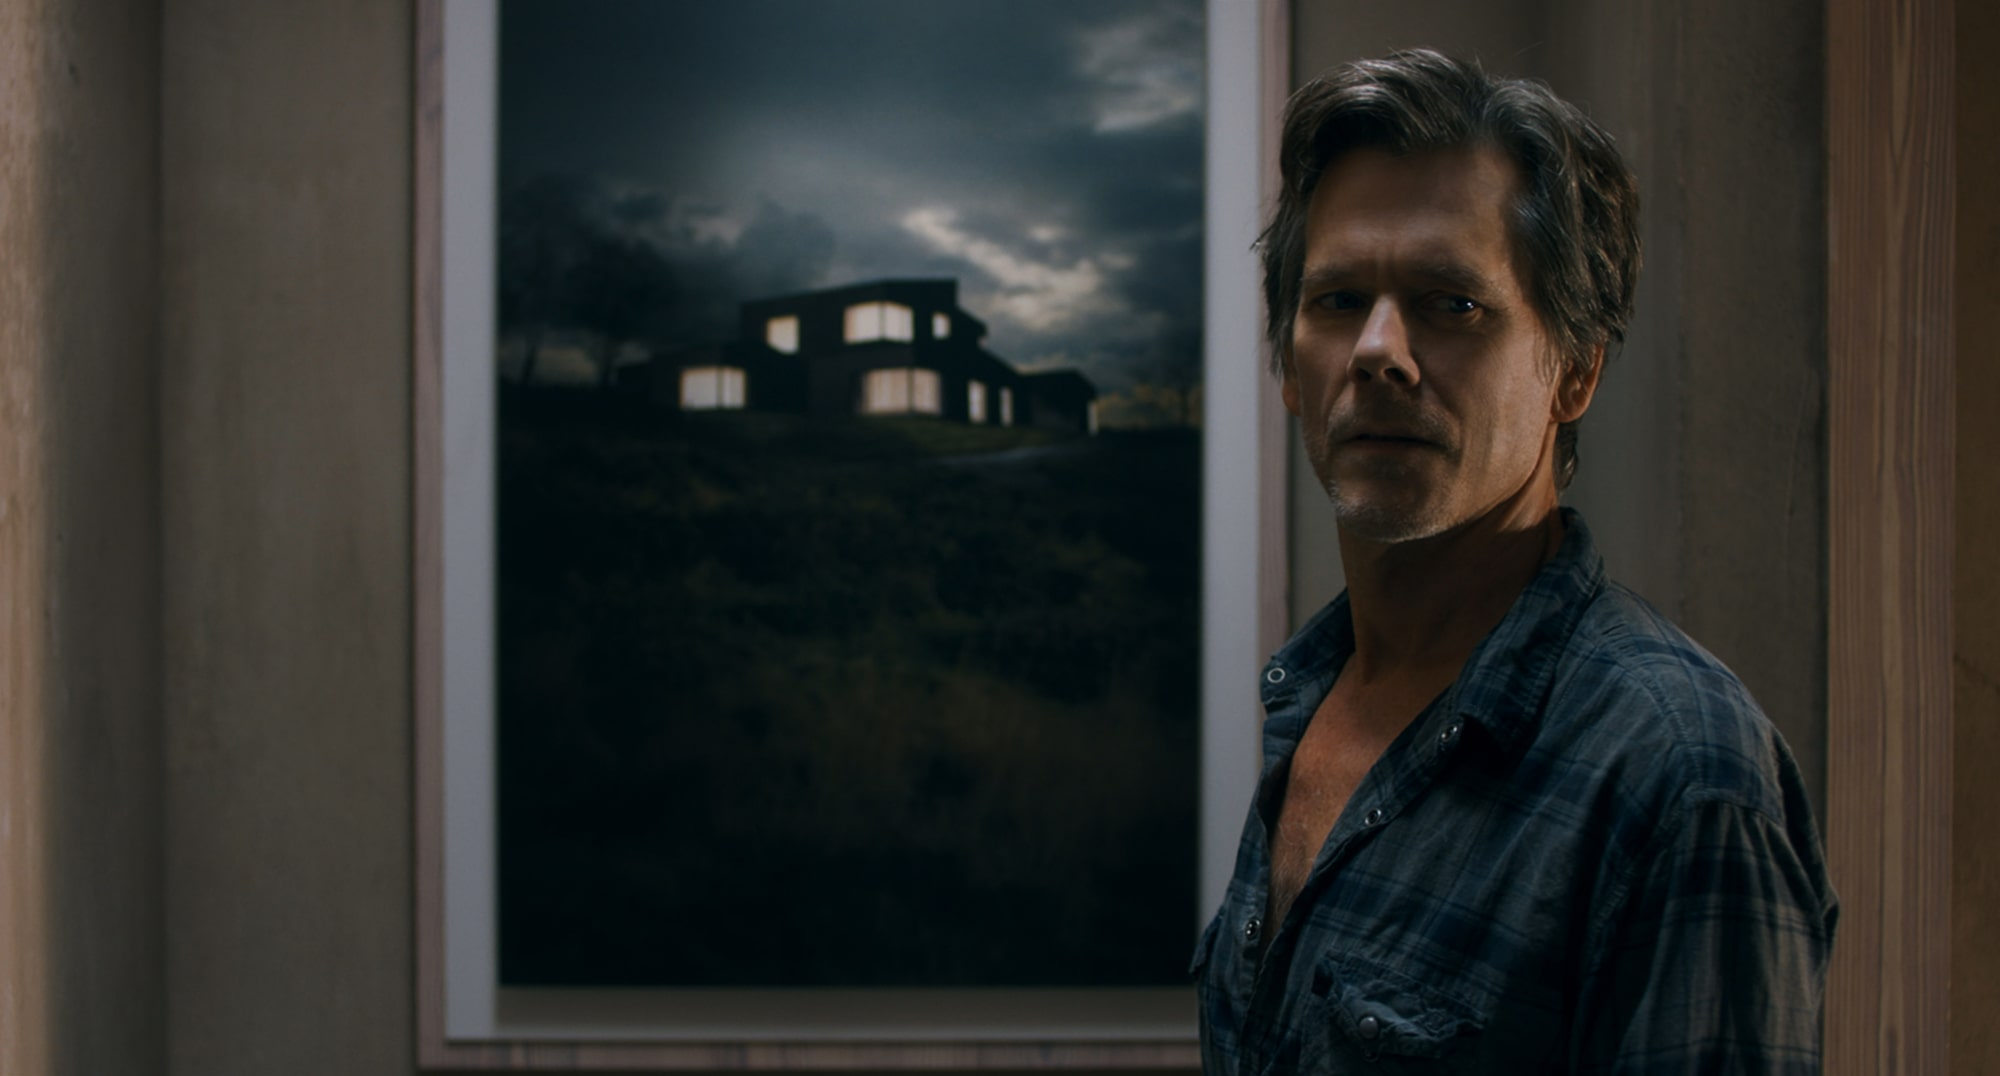 Image 6 of the You Should Have Left gallery